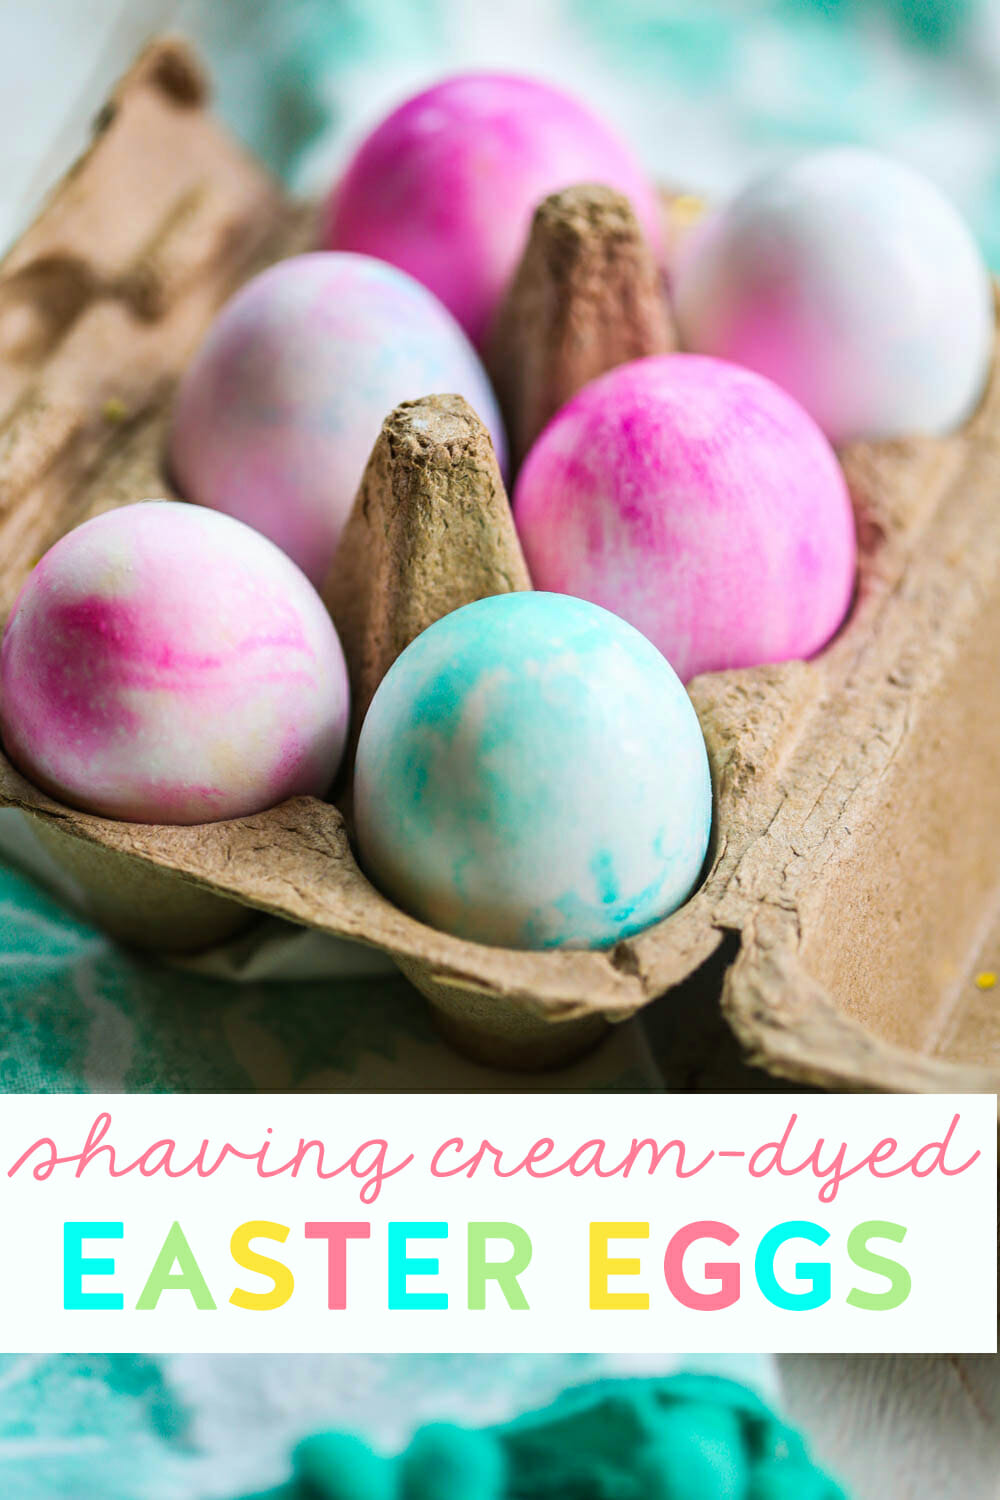 Mar 28,  · Food coloring is safe, easy, and allows you to craft nearly any variance of color and design on your egg-canvasses, right? While one can't use shaving cream alone to dye eggs .